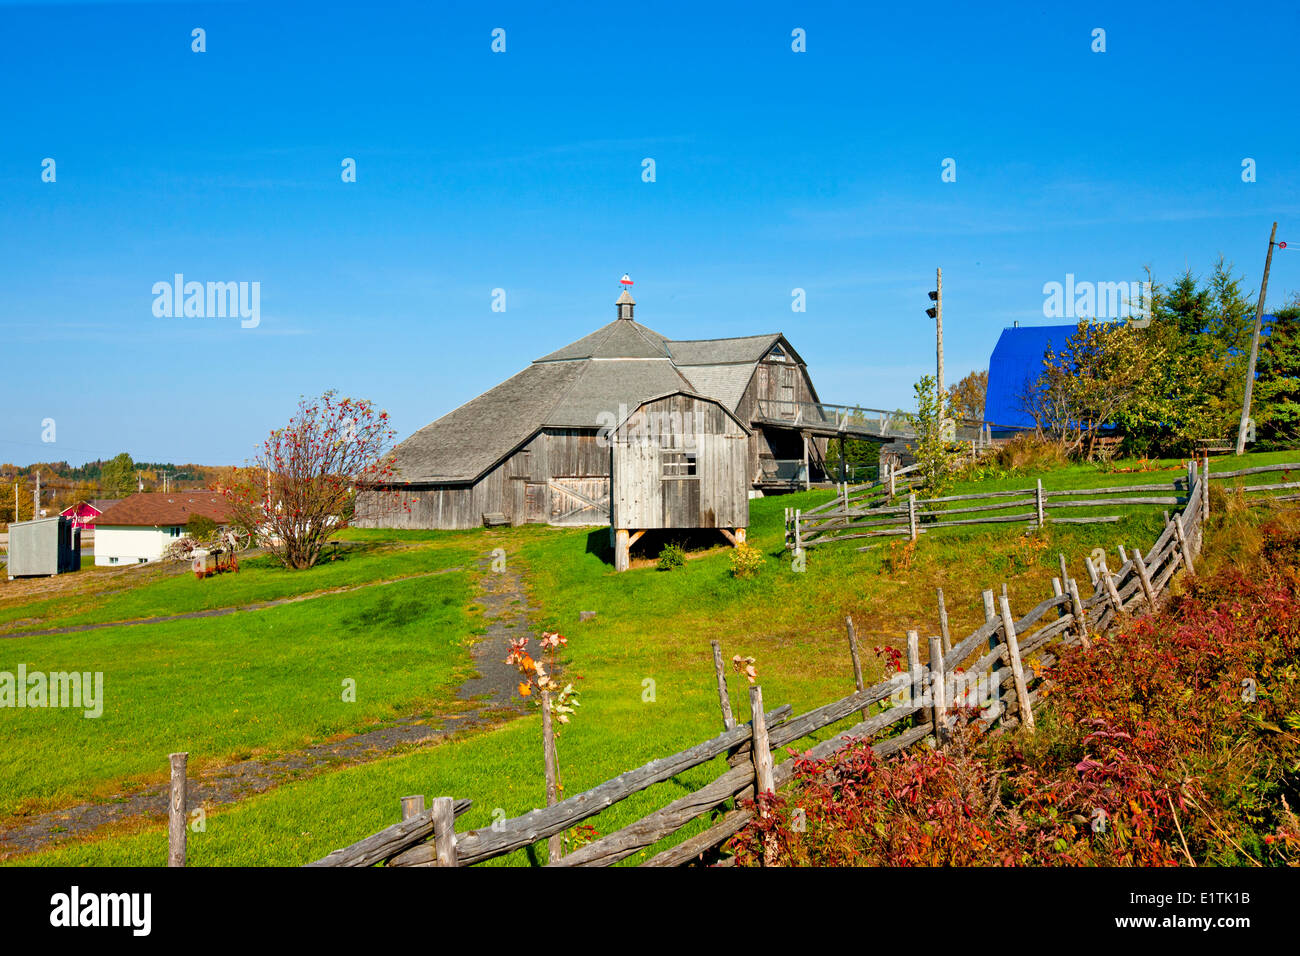 Built in 1888, the Saint-Fabien barn is officially known as the Adolphe-Gagnon Octagonal Barn, Quebec, Canada - Stock Image